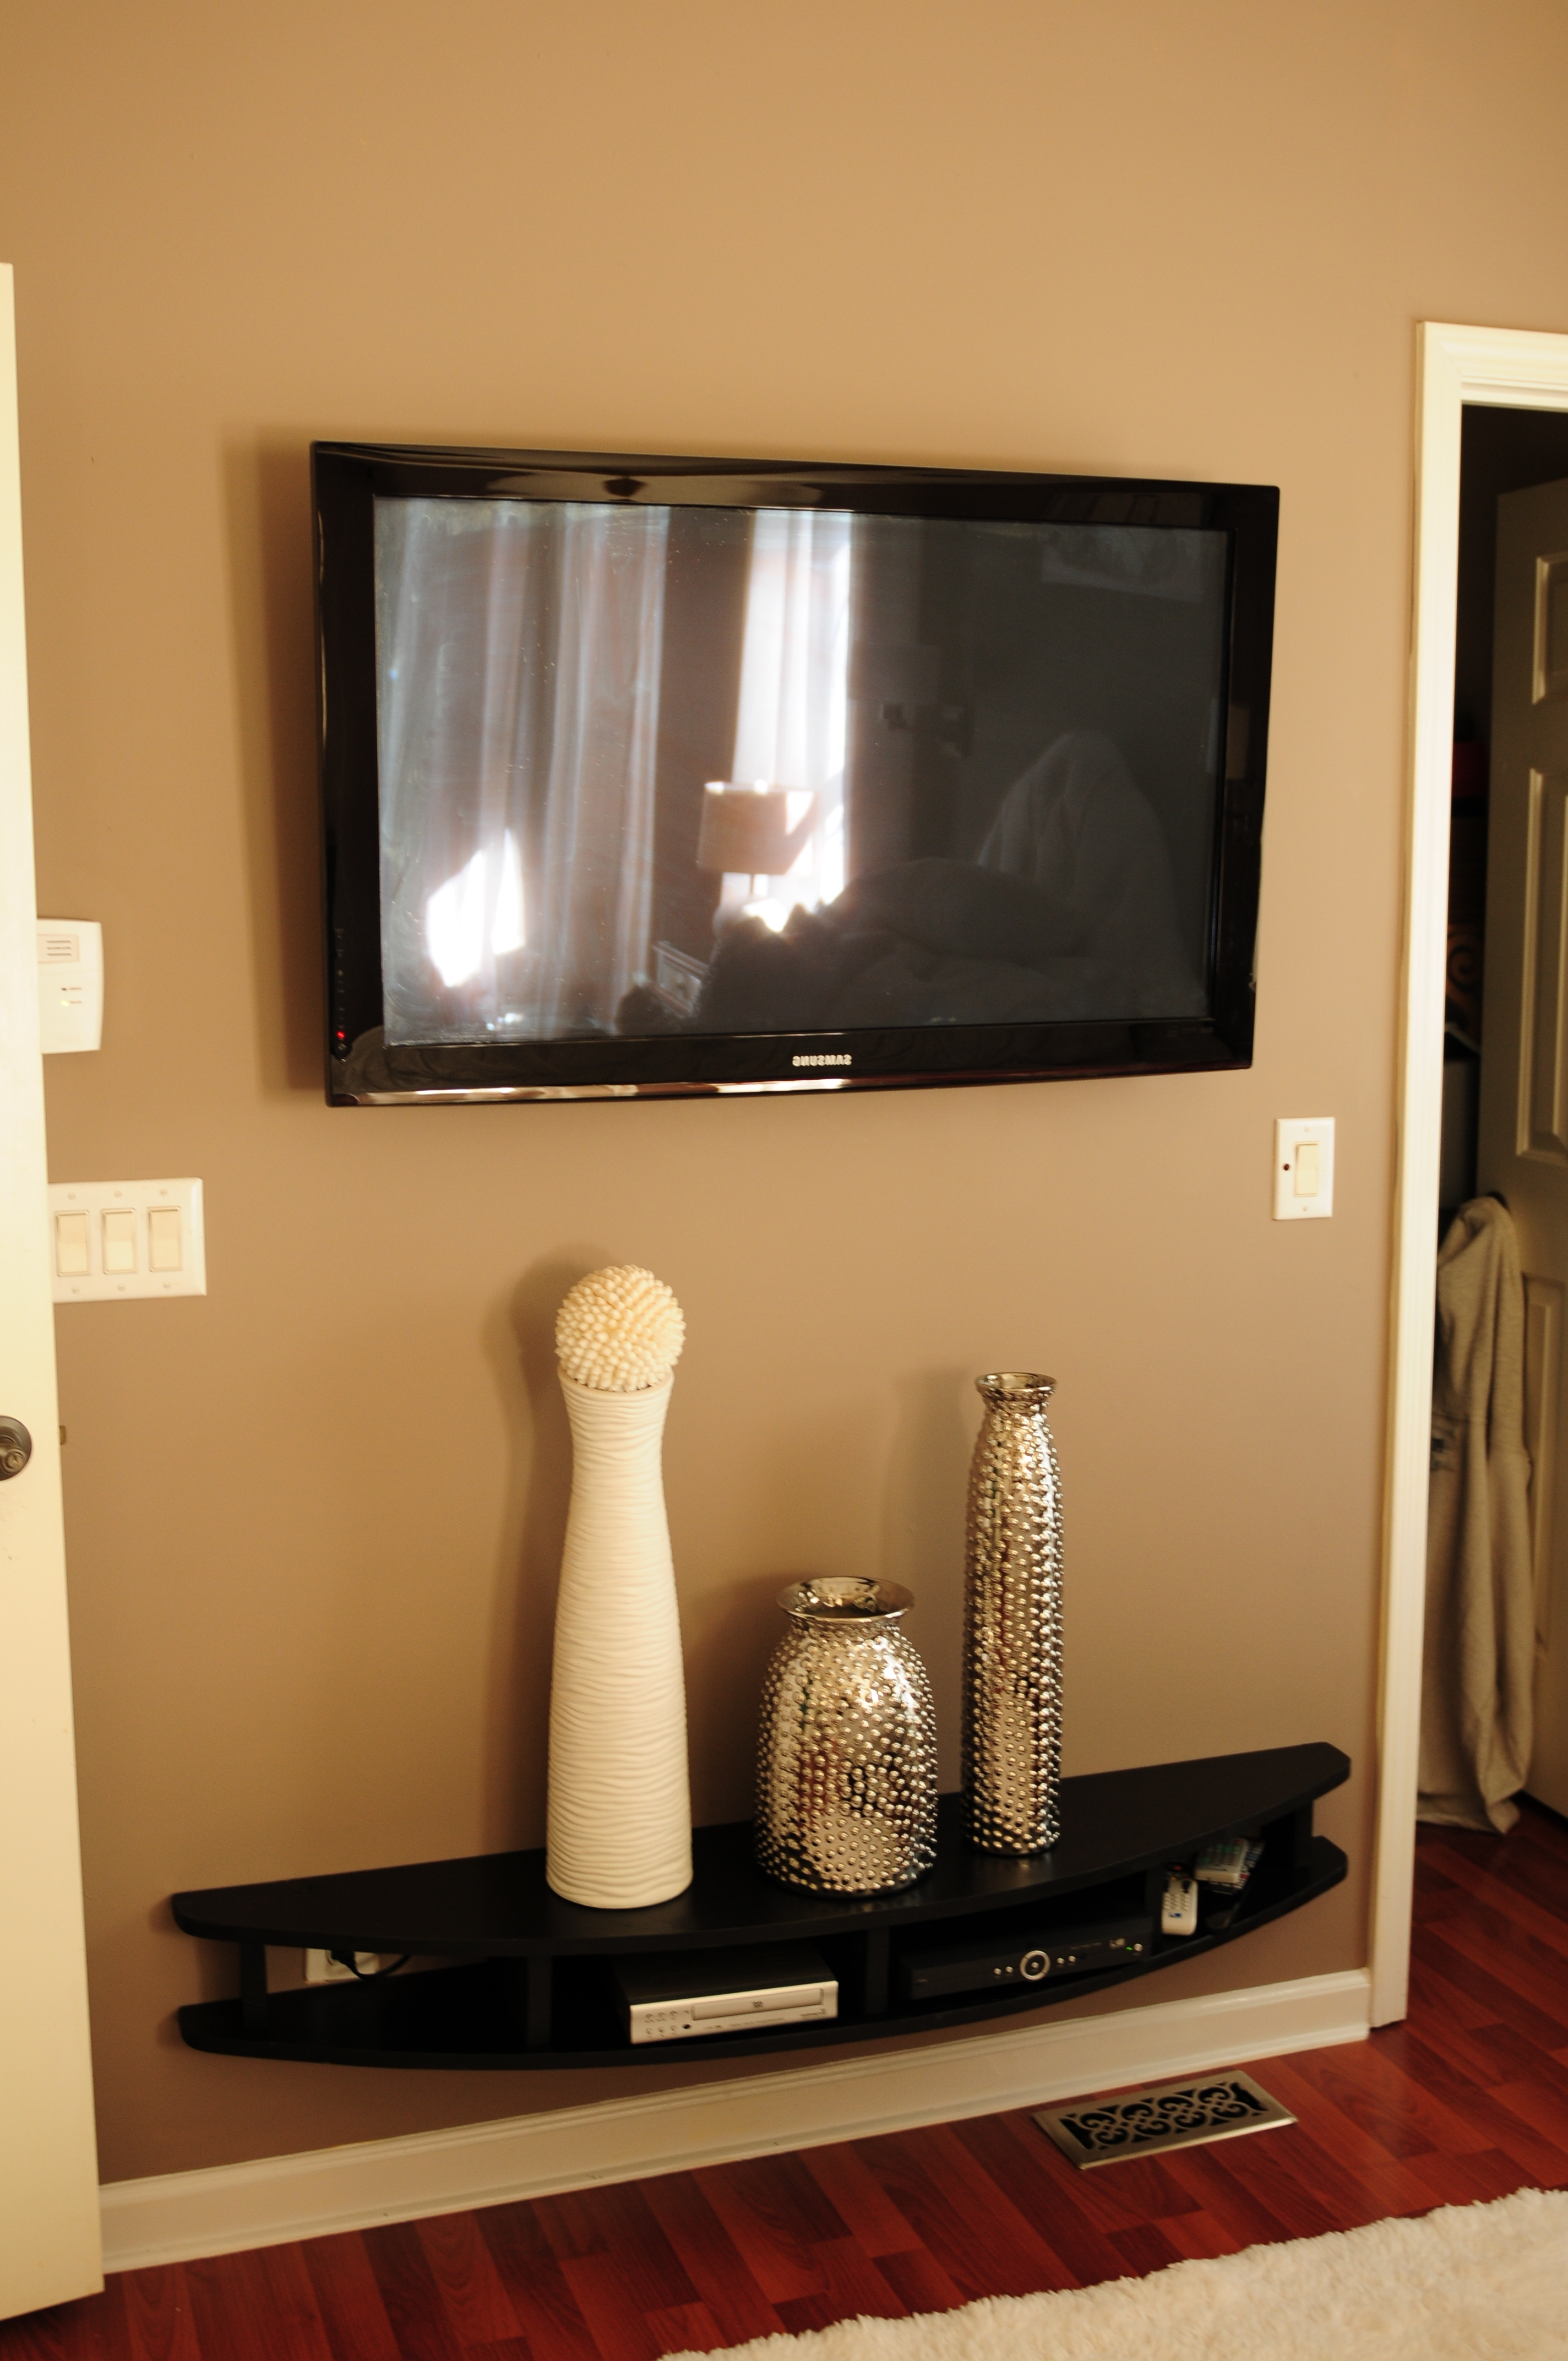 2017 Curved Black Wall Mounted Media Console Shelf Under Flat Screen Tv With Regard To Flat Screen Shelving (View 1 of 15)